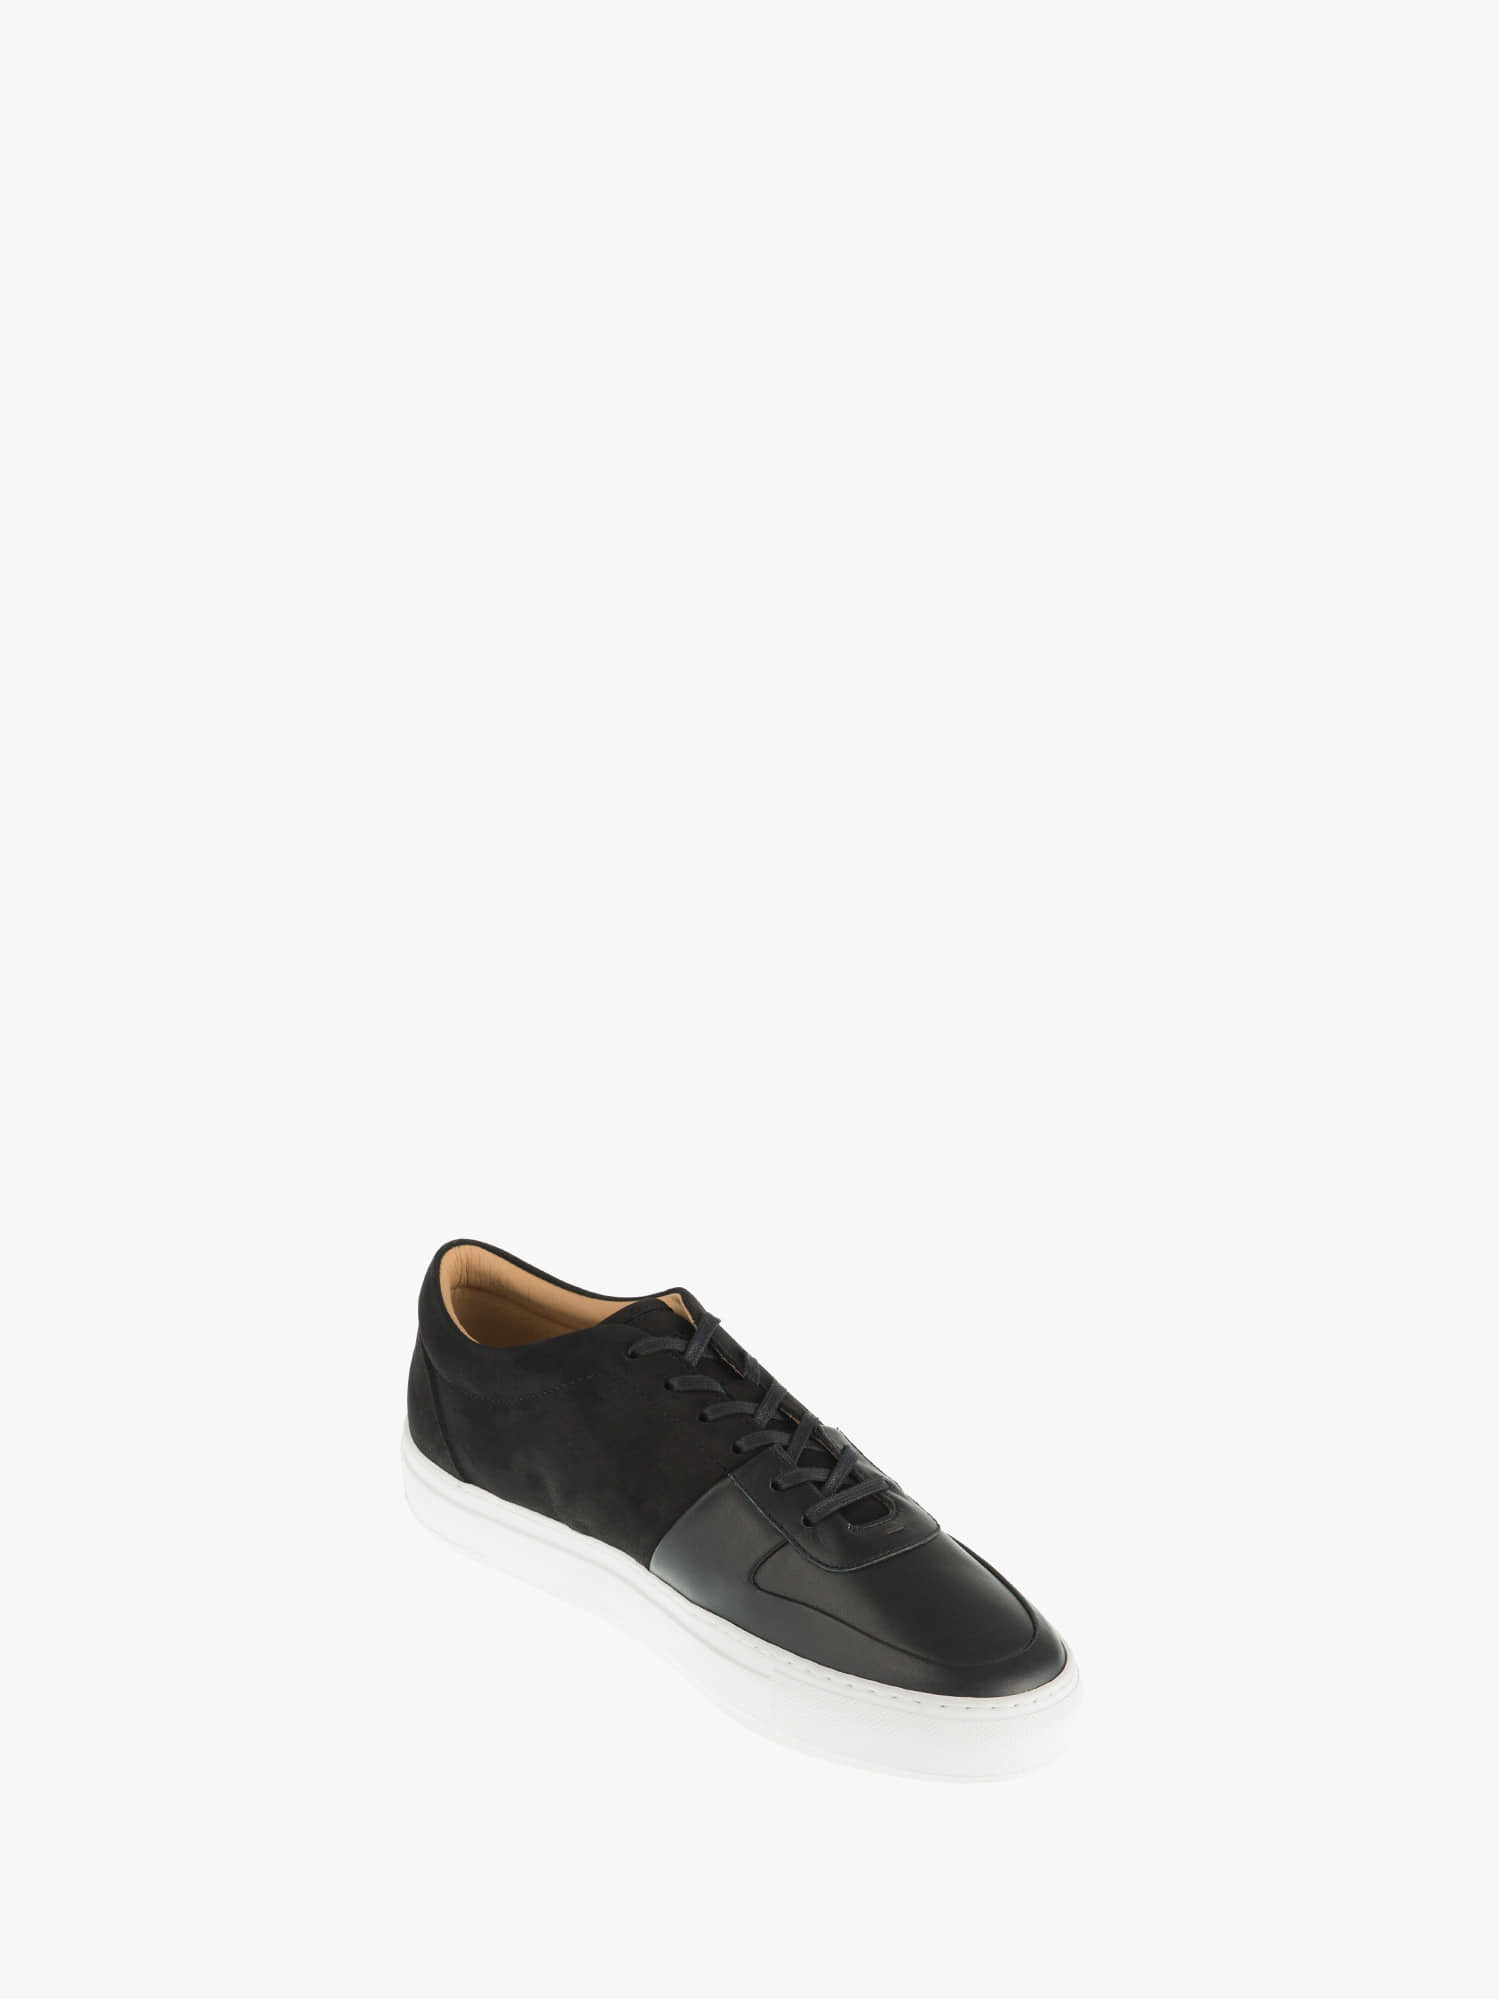 balmoral 06 nubuck/leather black